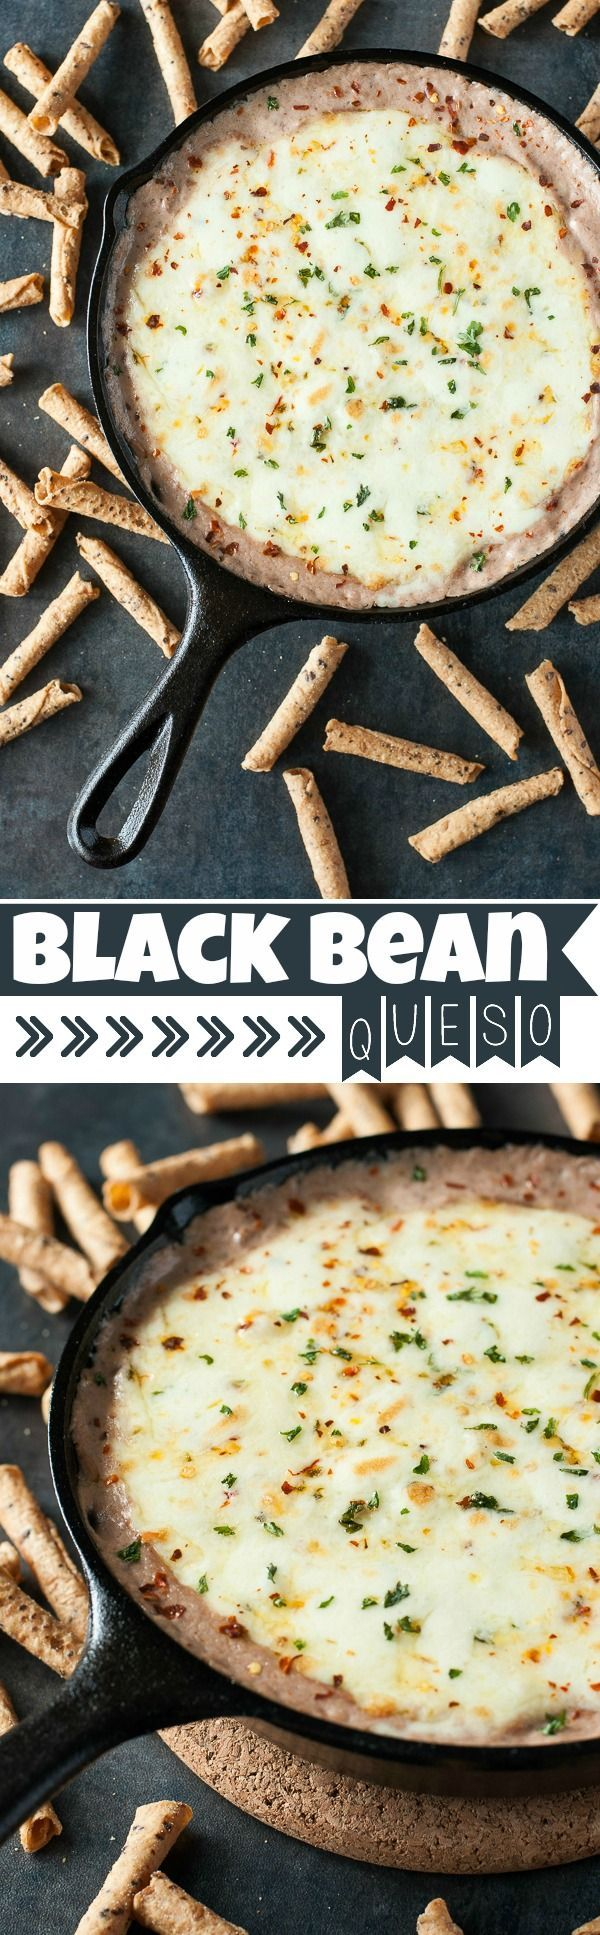 Black Bean Queso :: bold black beans and cheesy pepper jack are a match made in dipping heaven! Everyone loves this easy cheesy black bean dip! - PERFECT for Cinco de Mayo!